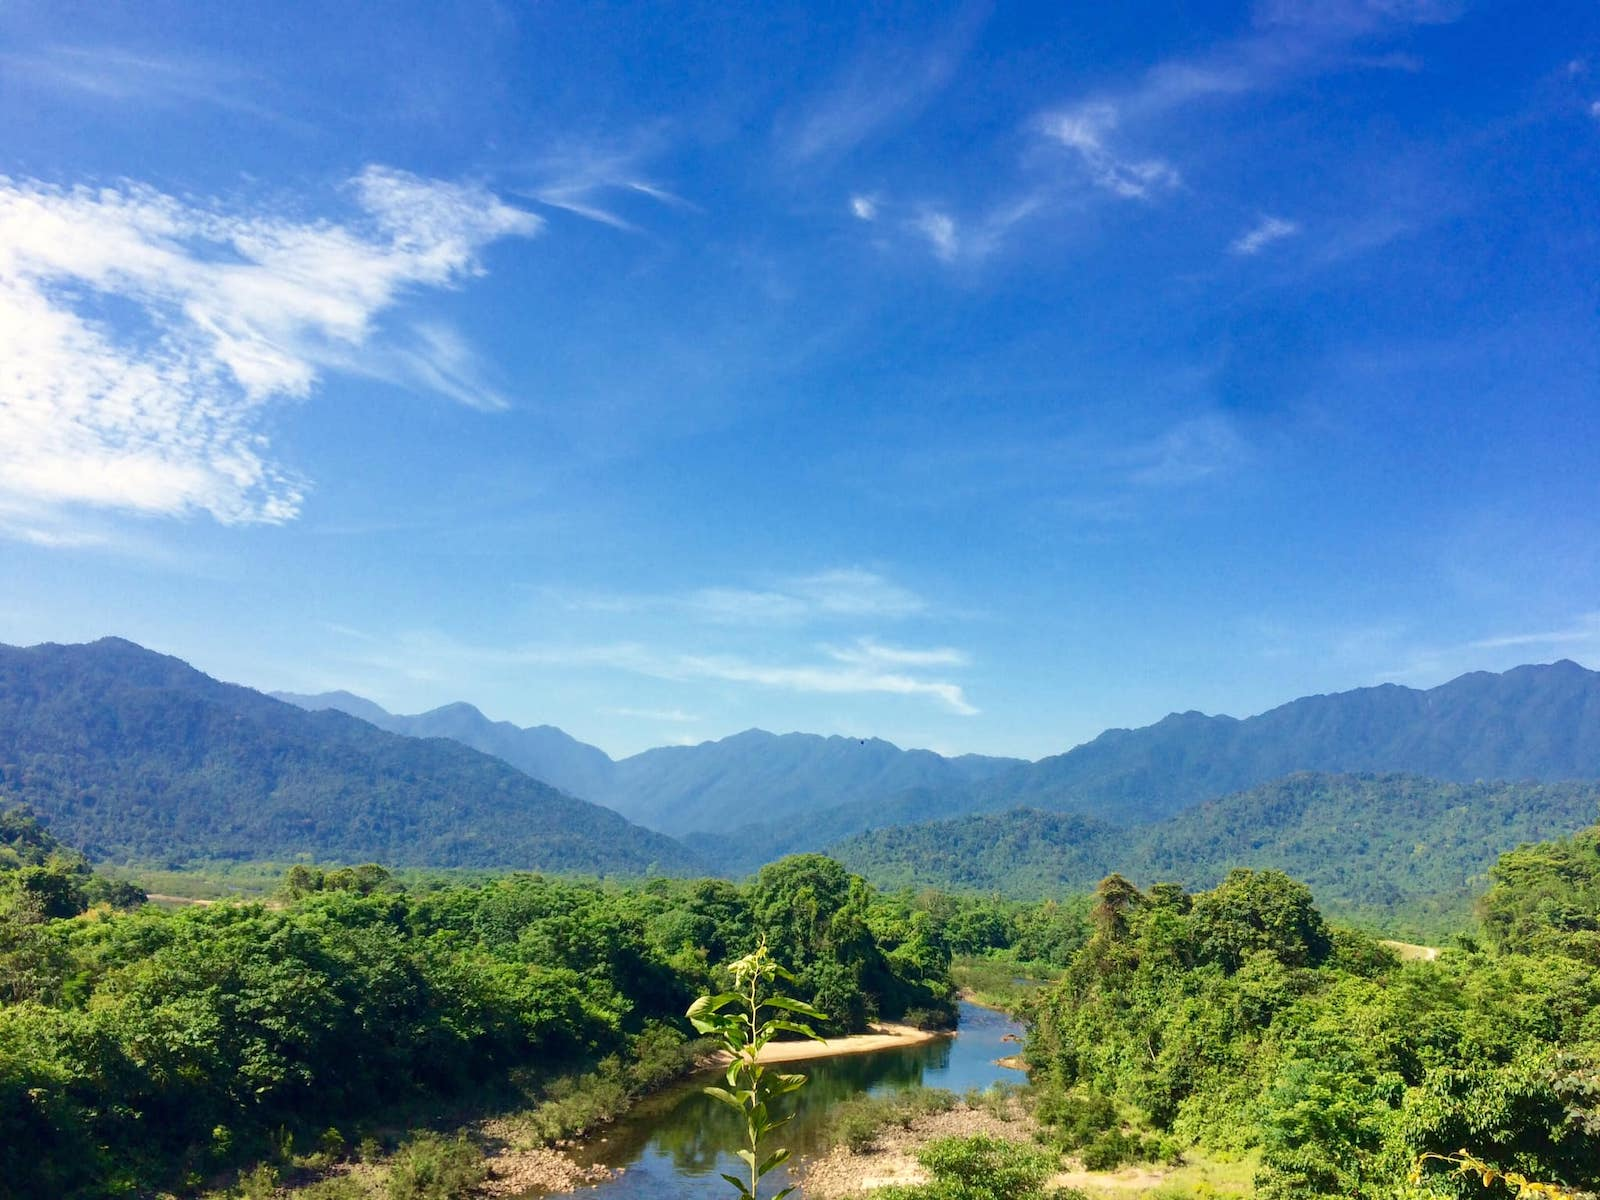 Image of the Annamese Mountains in Vu Quang National Park. Photo: Vu Quang National Park